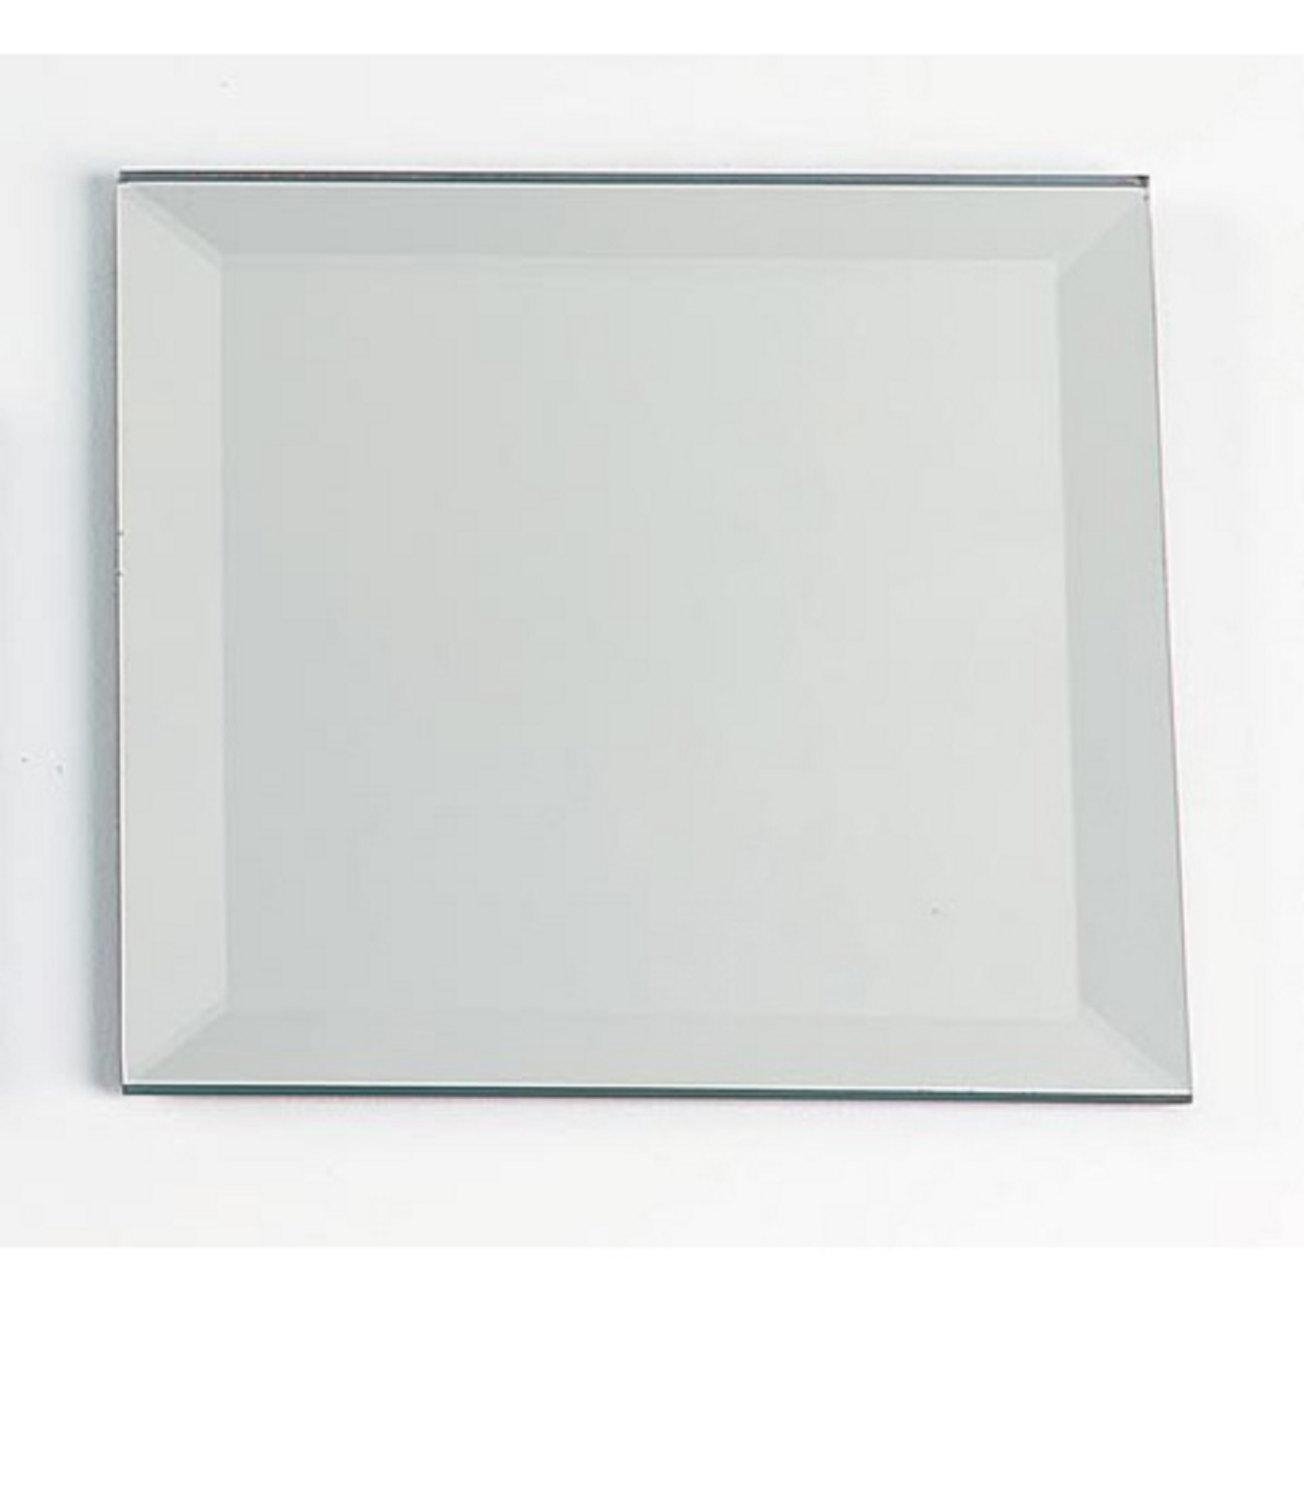 4 Inch – Square Beveled Edge Glass Mirror – Mosaic Tile Focal From Intended For Square Bevelled Mirror (Image 1 of 20)